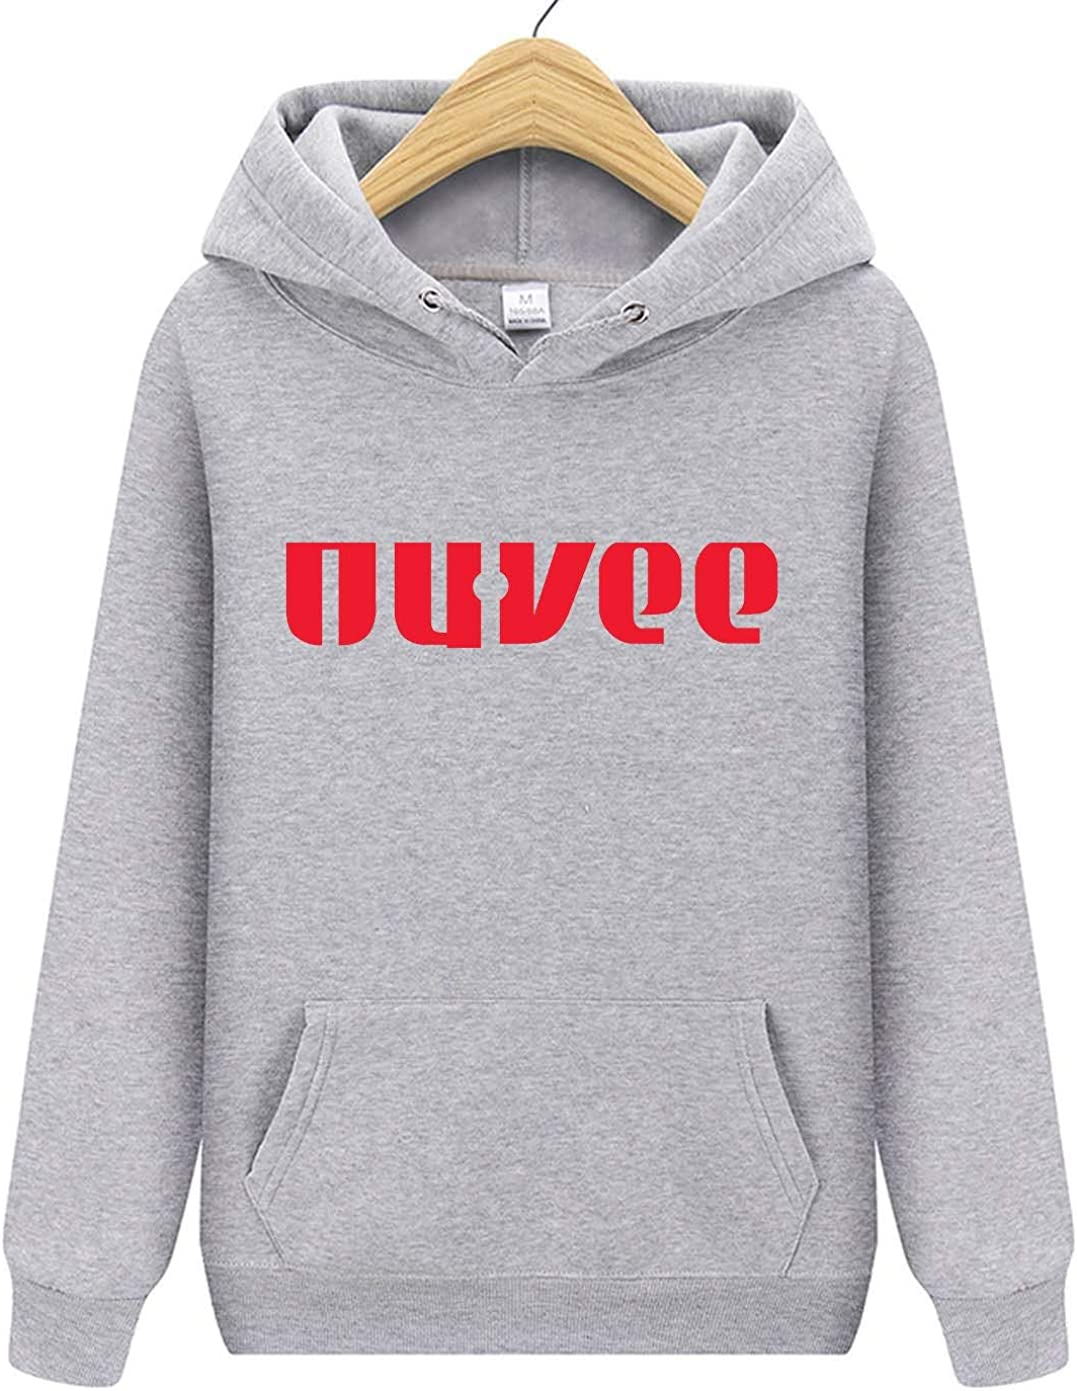 Hy-Vee Food Stores Unisex for Mens and Womens Hooded Sweaterwear